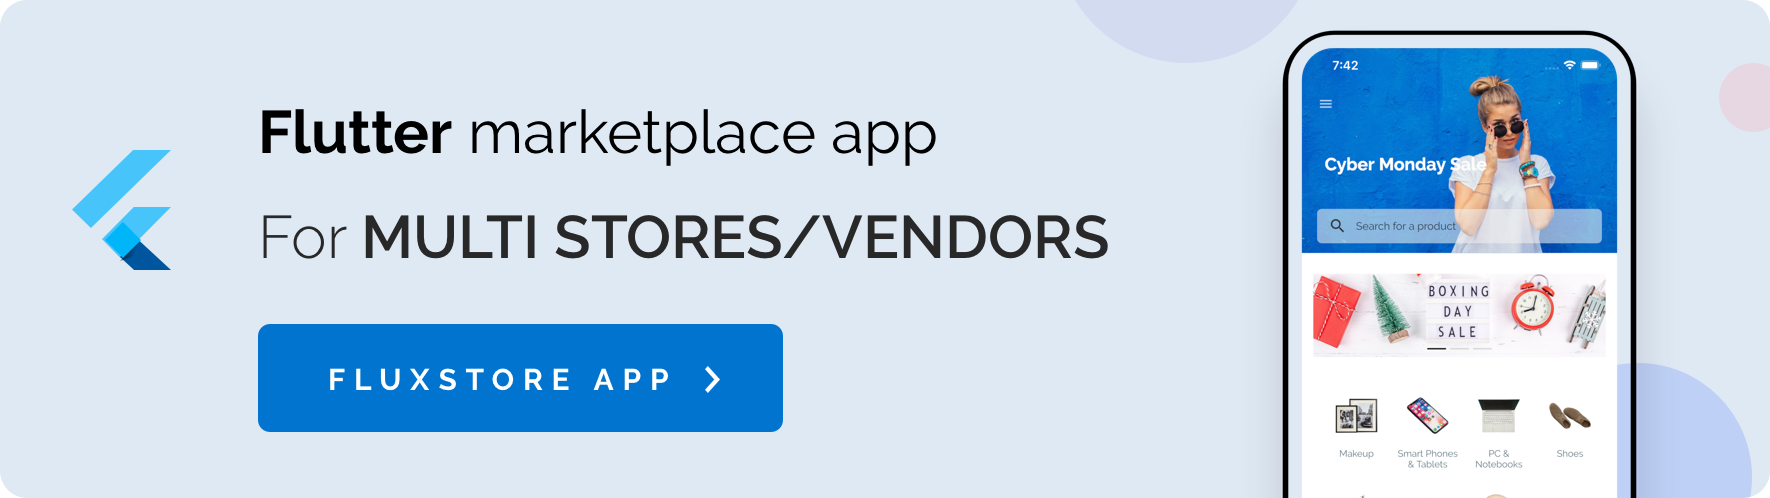 Mstore Shopify - Complete React Native template for e-commerce - 10